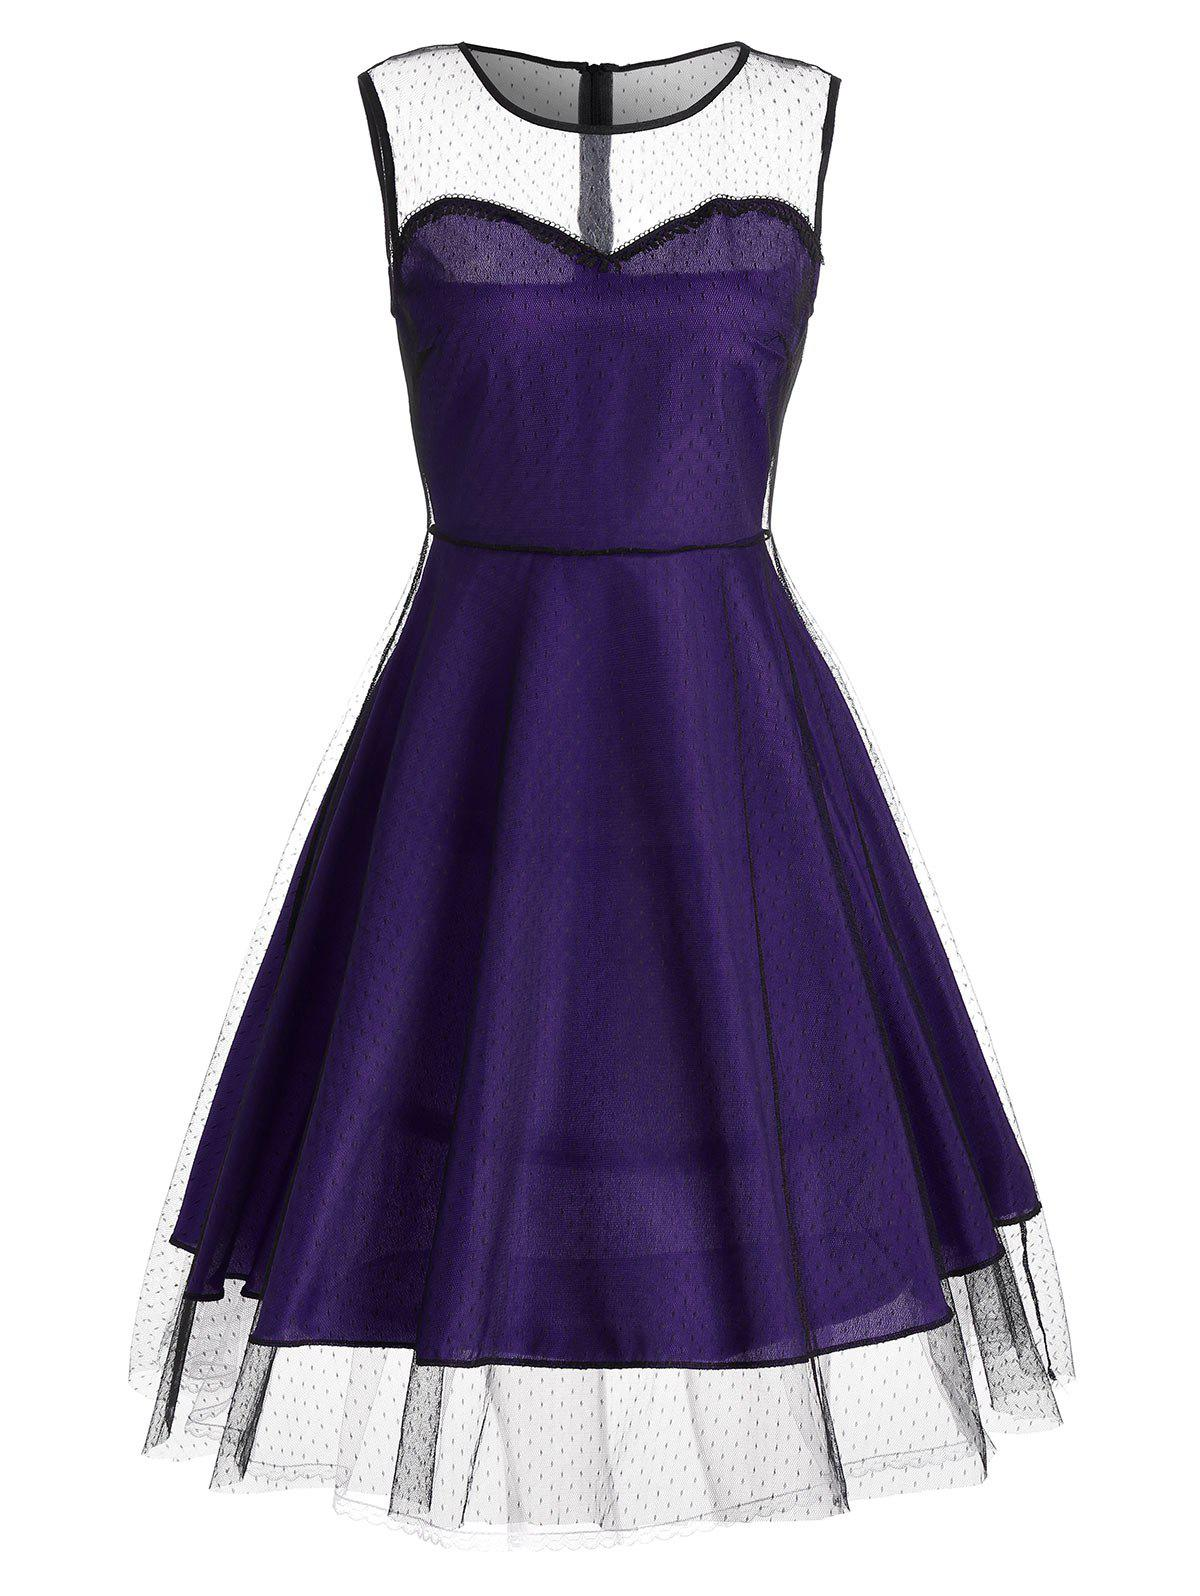 Homecoming Vintage Mesh Panel Dress - PURPLE 2XL